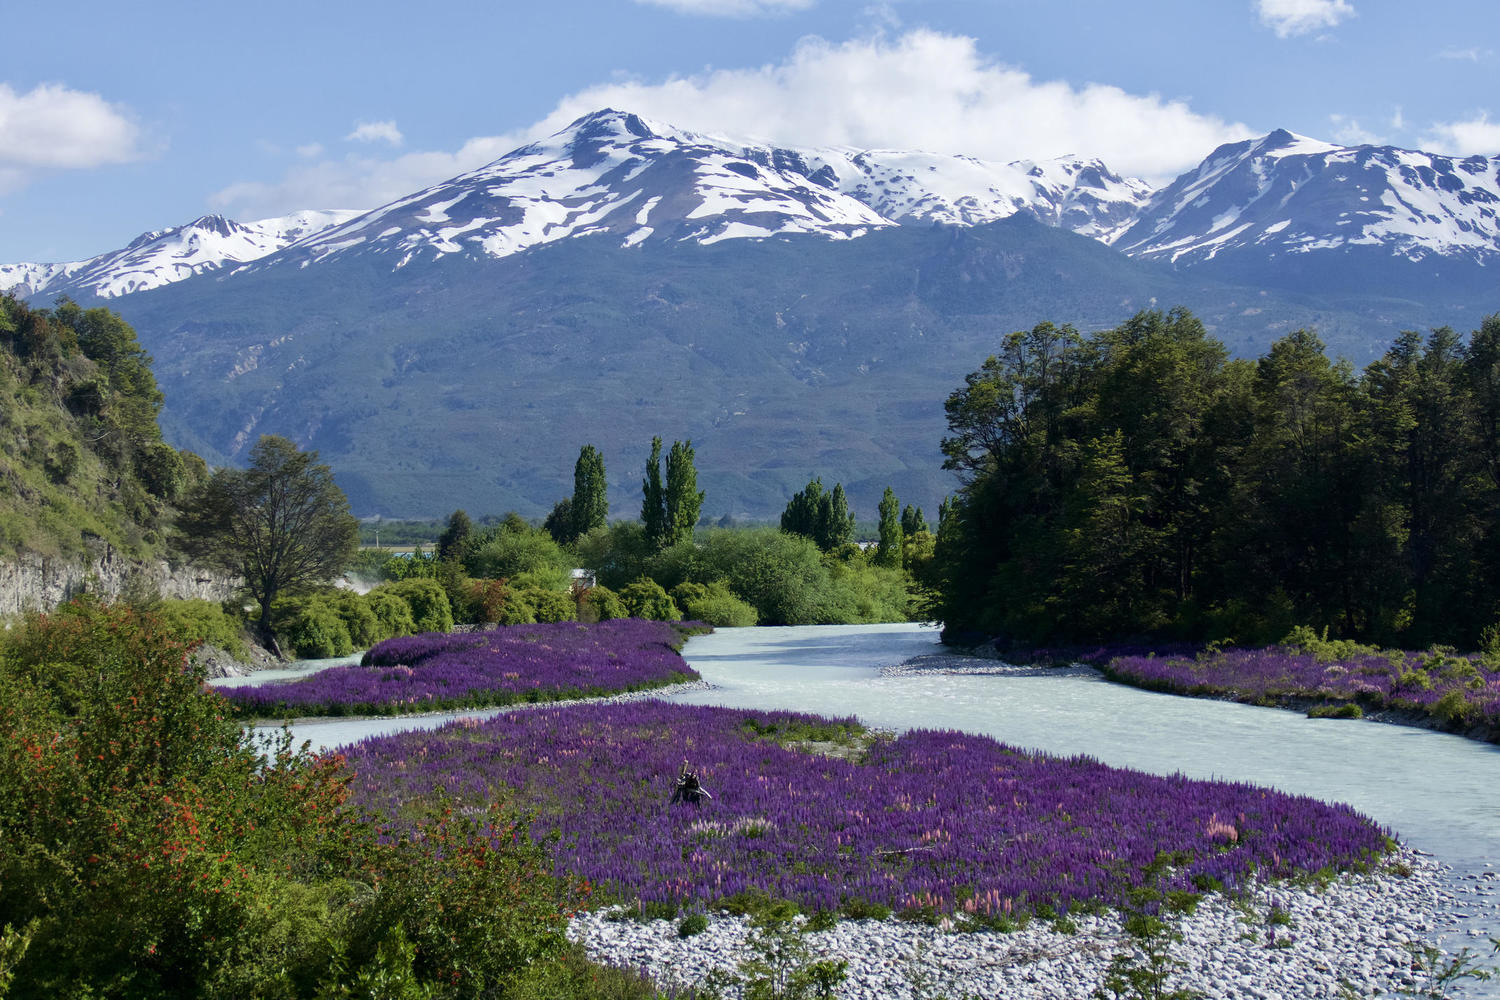 The spring flowers have bloomed along the Carretera Austral